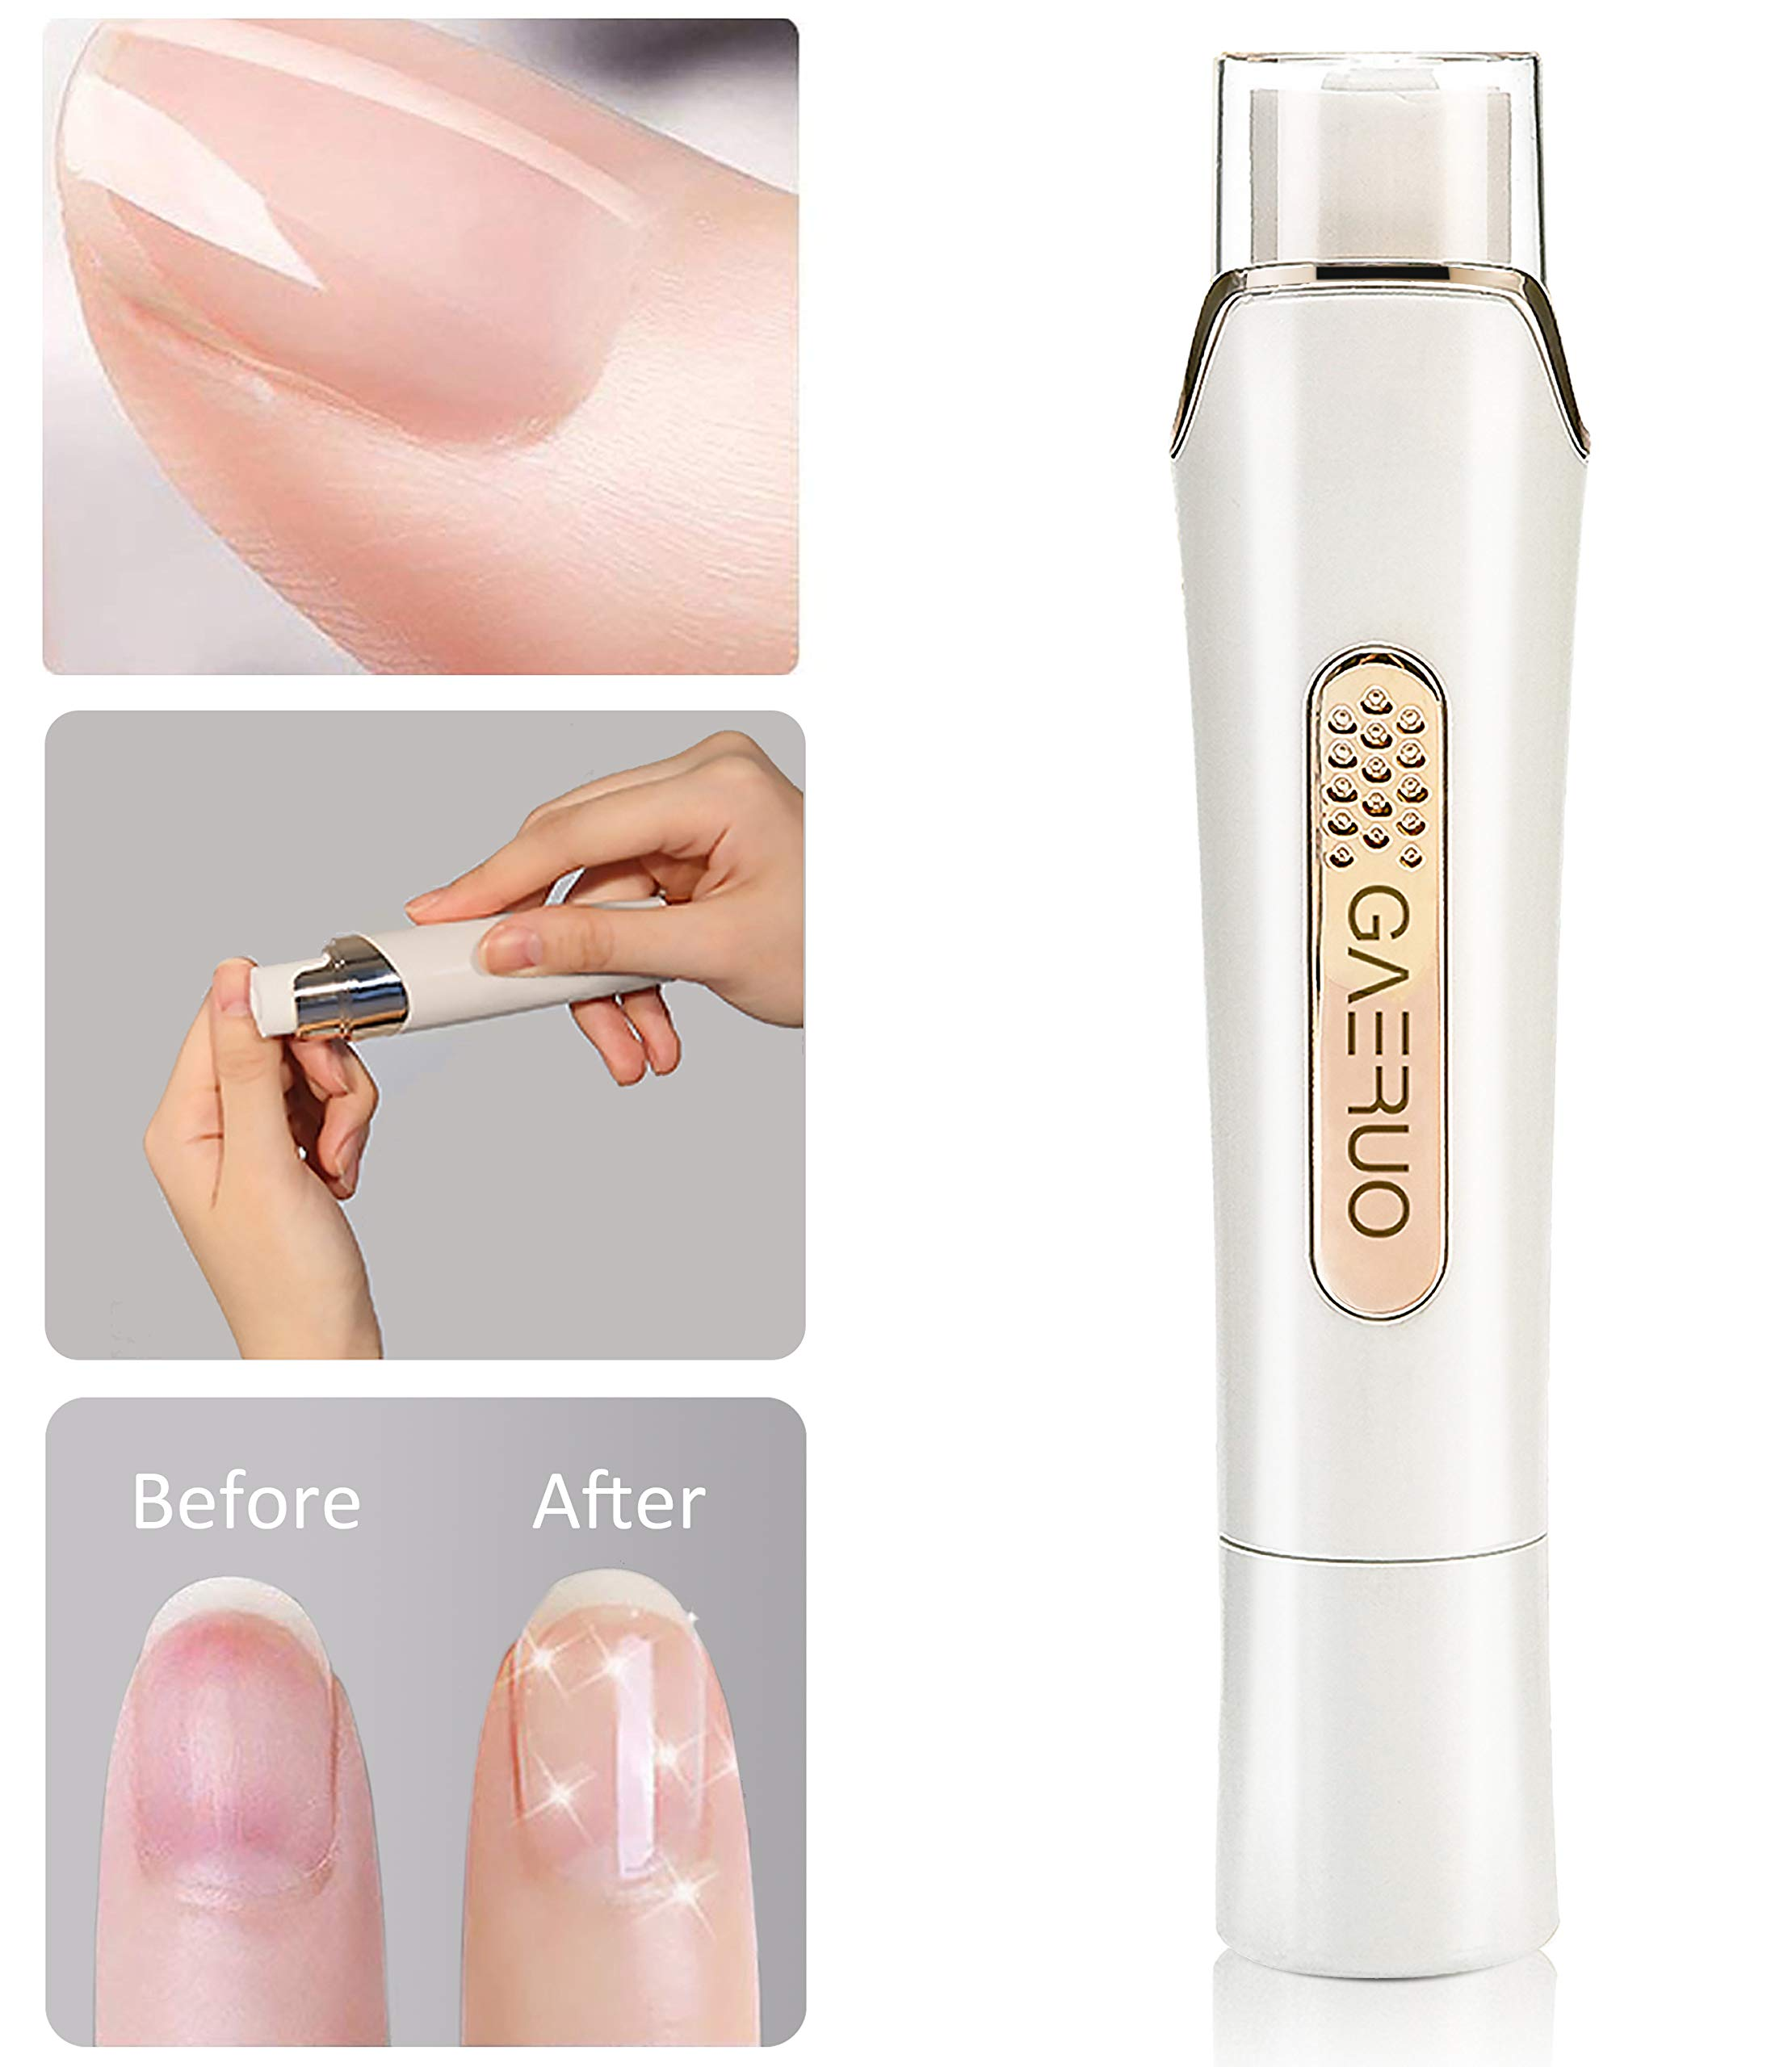 Premium Electric Manicure Pedicure Tool, Rechargeable Nail Buffer and Polisher, Easily File and Shine Fingernails, Toenails for Naturally Beautiful Looking Nails (Standard Package) by SHAO